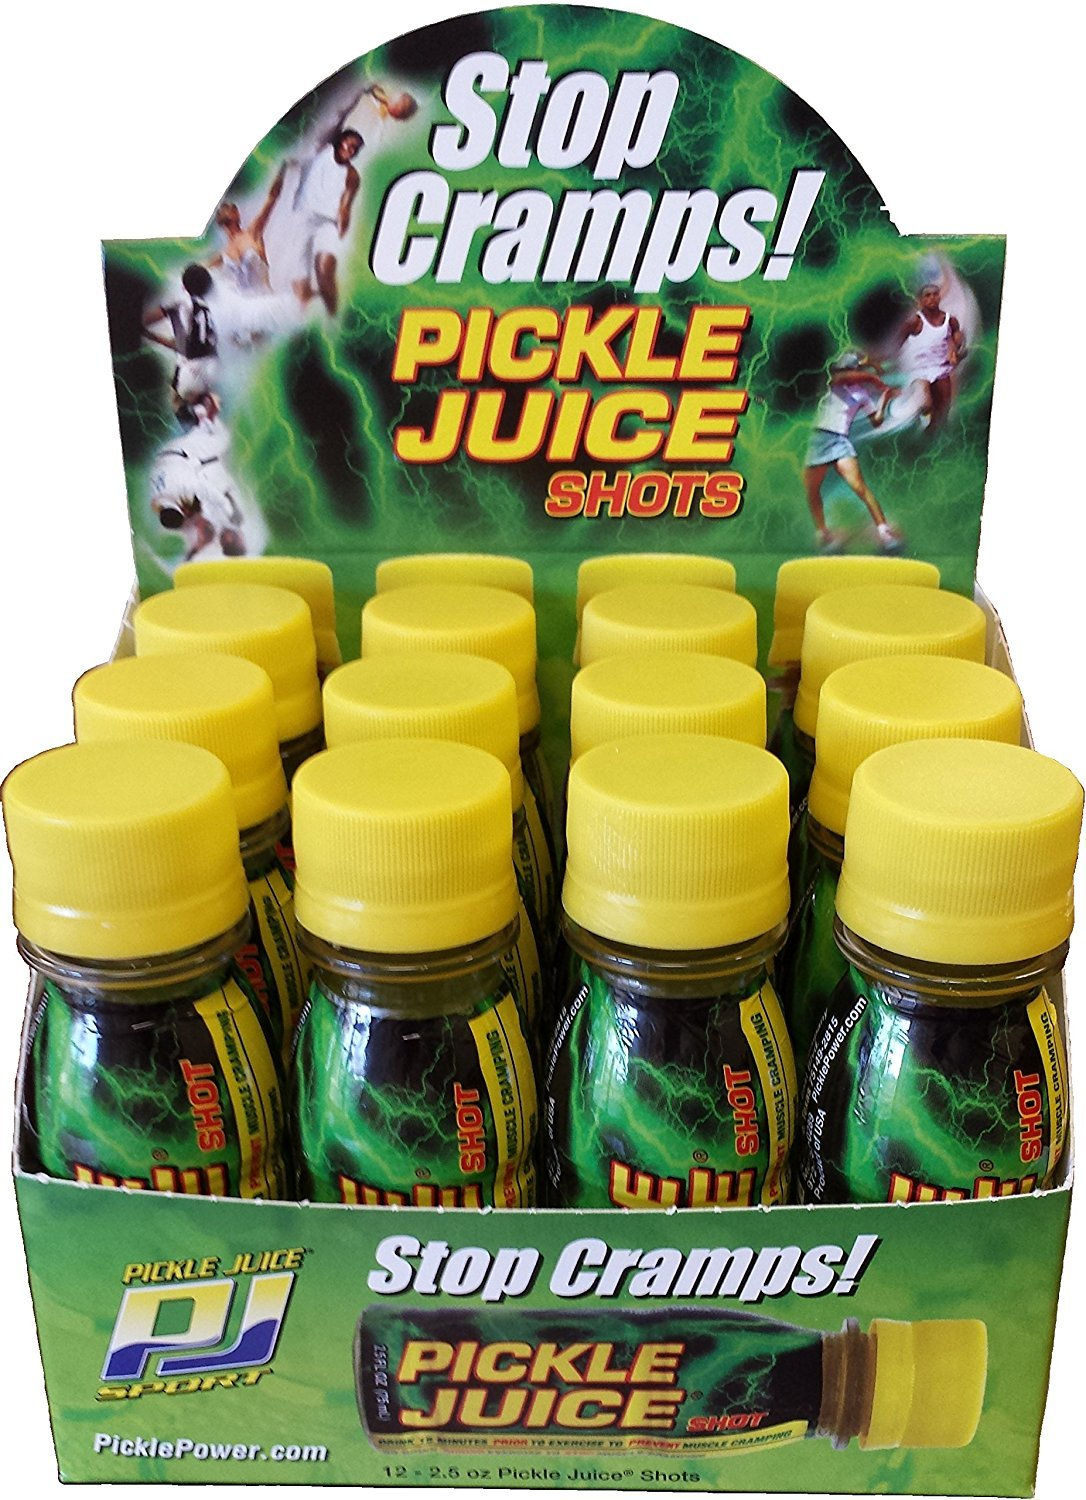 Pickle Juice Extra Strength Shots, 2.5 oz, 12 pack - 2 Boxes